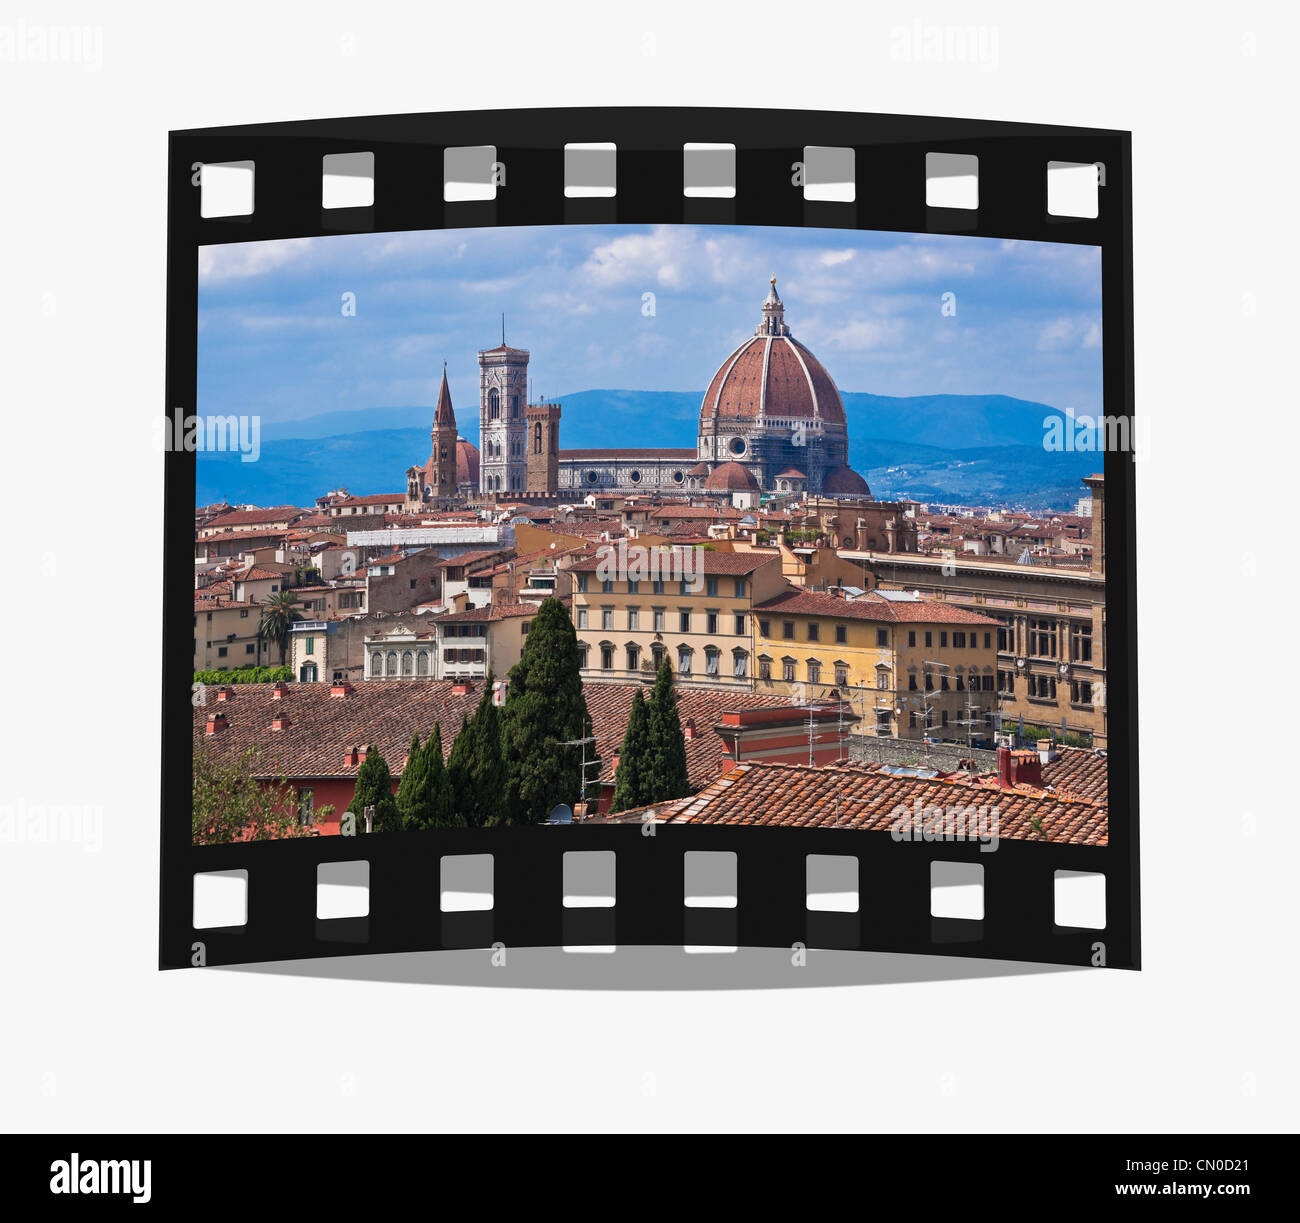 Filmstrip: View to the Cathedral Duomo Santa Maria del Fiore and the bell tower Florence, Tuscany, Italy, Europe - Stock Image